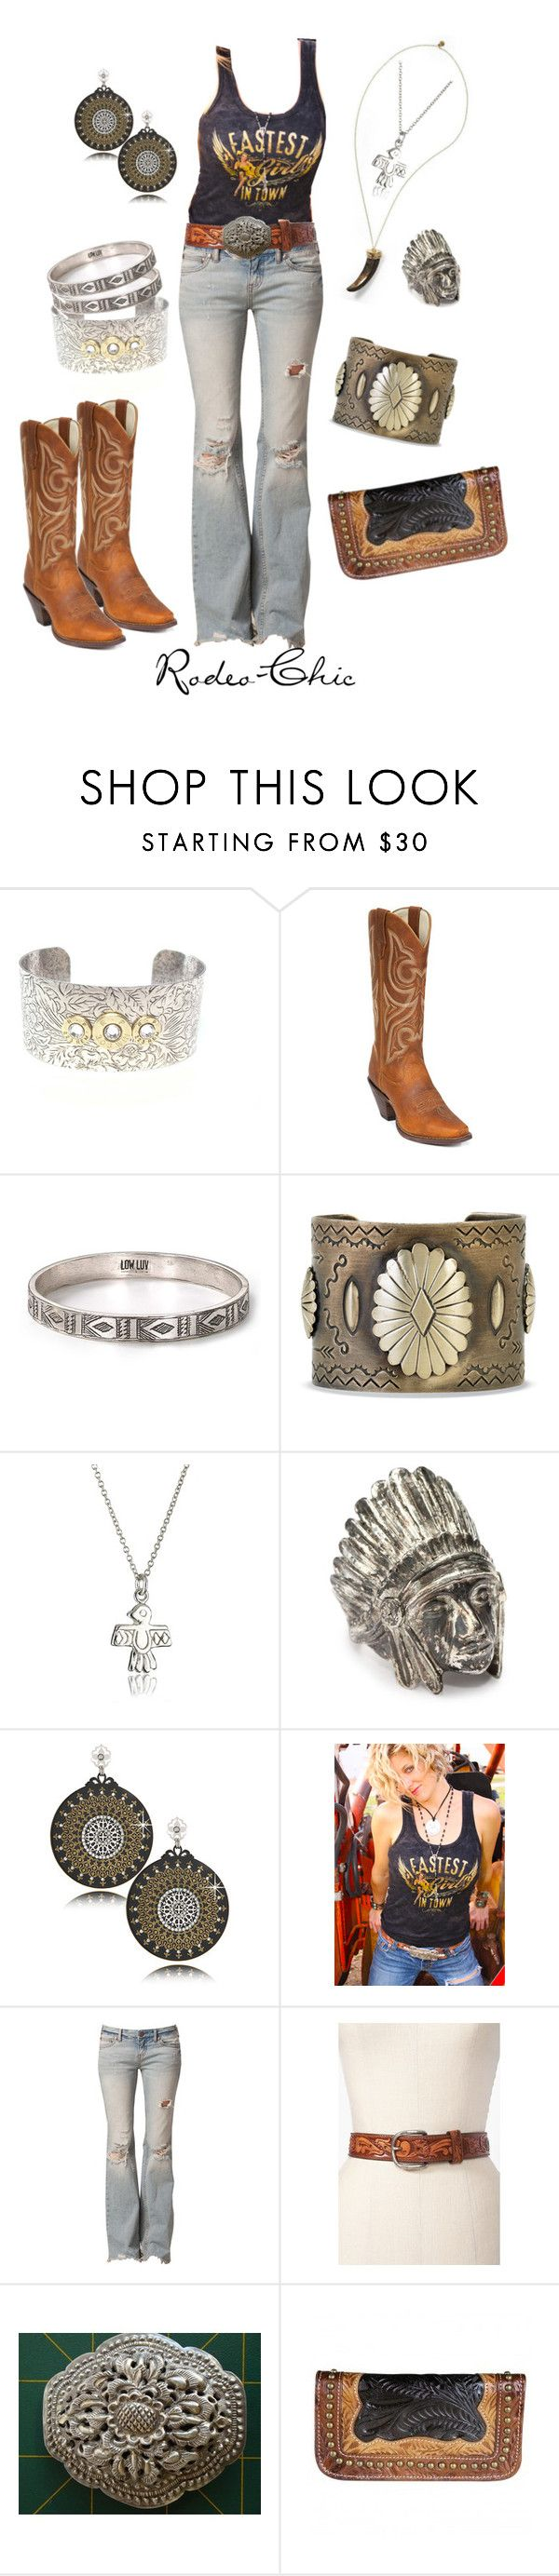 """""""Fasest Girl In Town"""" by rodeo-chic ❤ liked on Polyvore featuring Durango, LowLuv, House of Harlow 1960, Chibi Jewels, LK Designs, Junk Gypsy, Free People, distressed jeans, distressed denim and cowboy boots"""